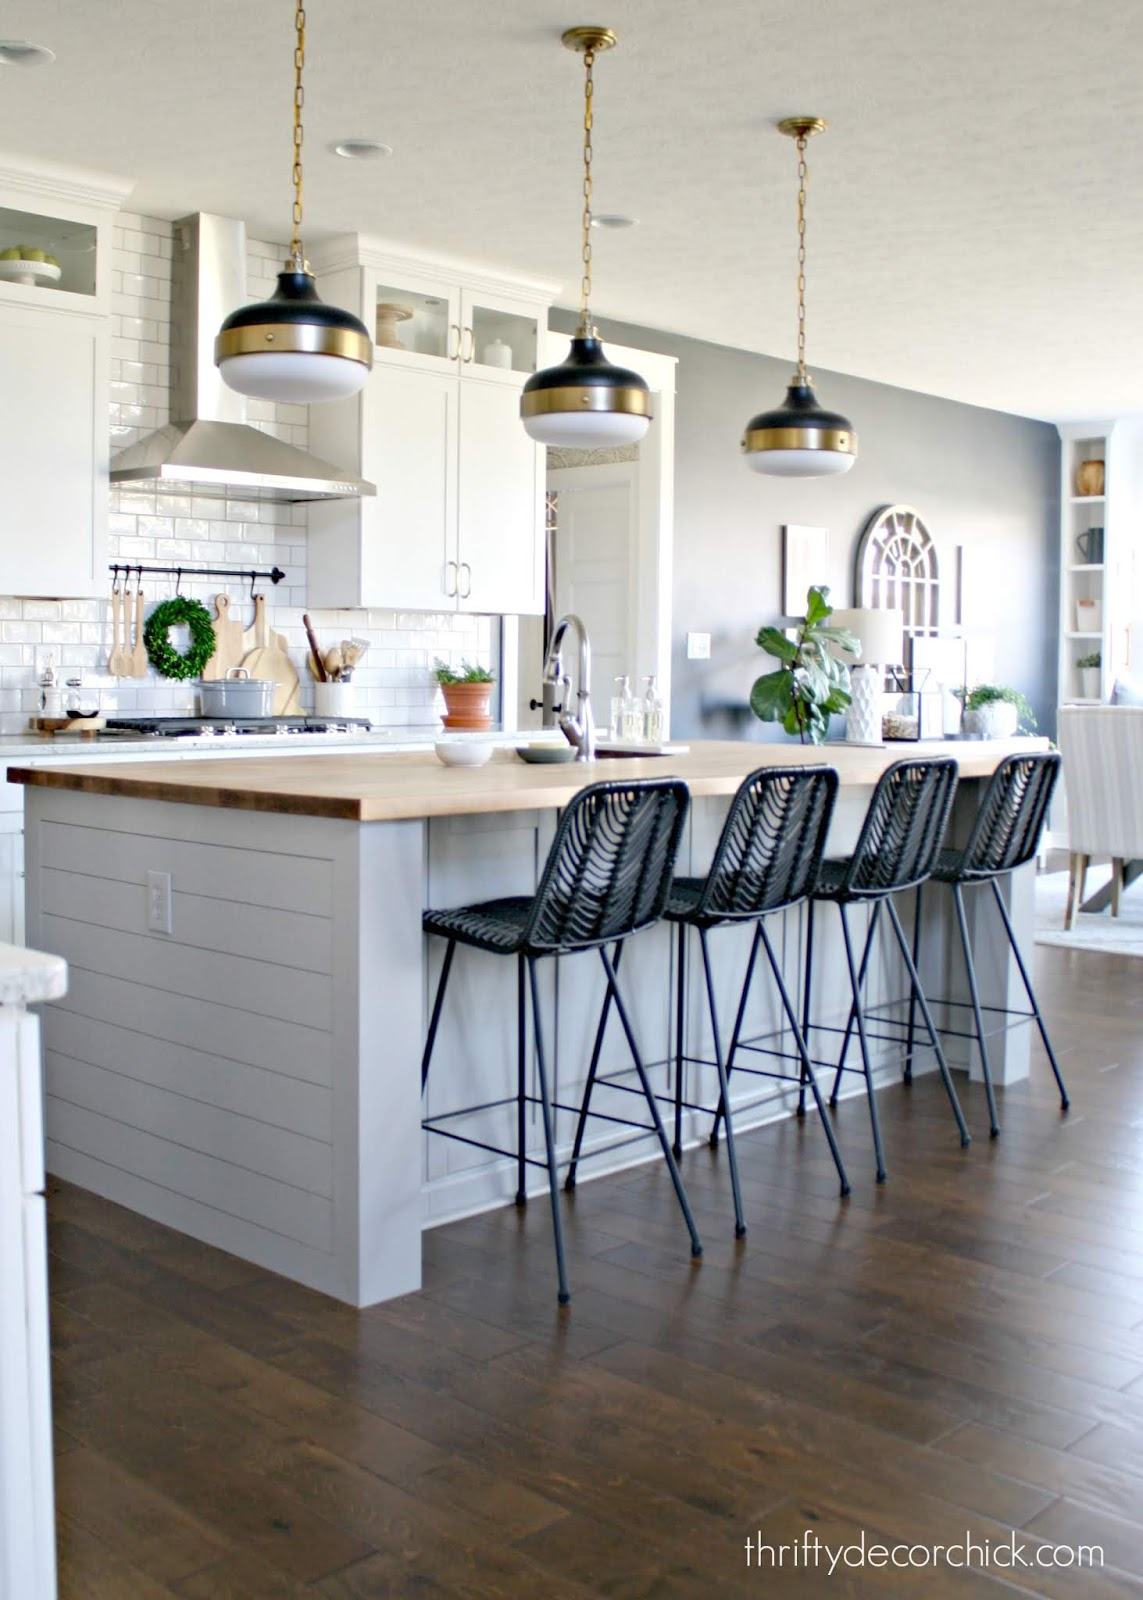 DIY kitchen island makeover with black stools